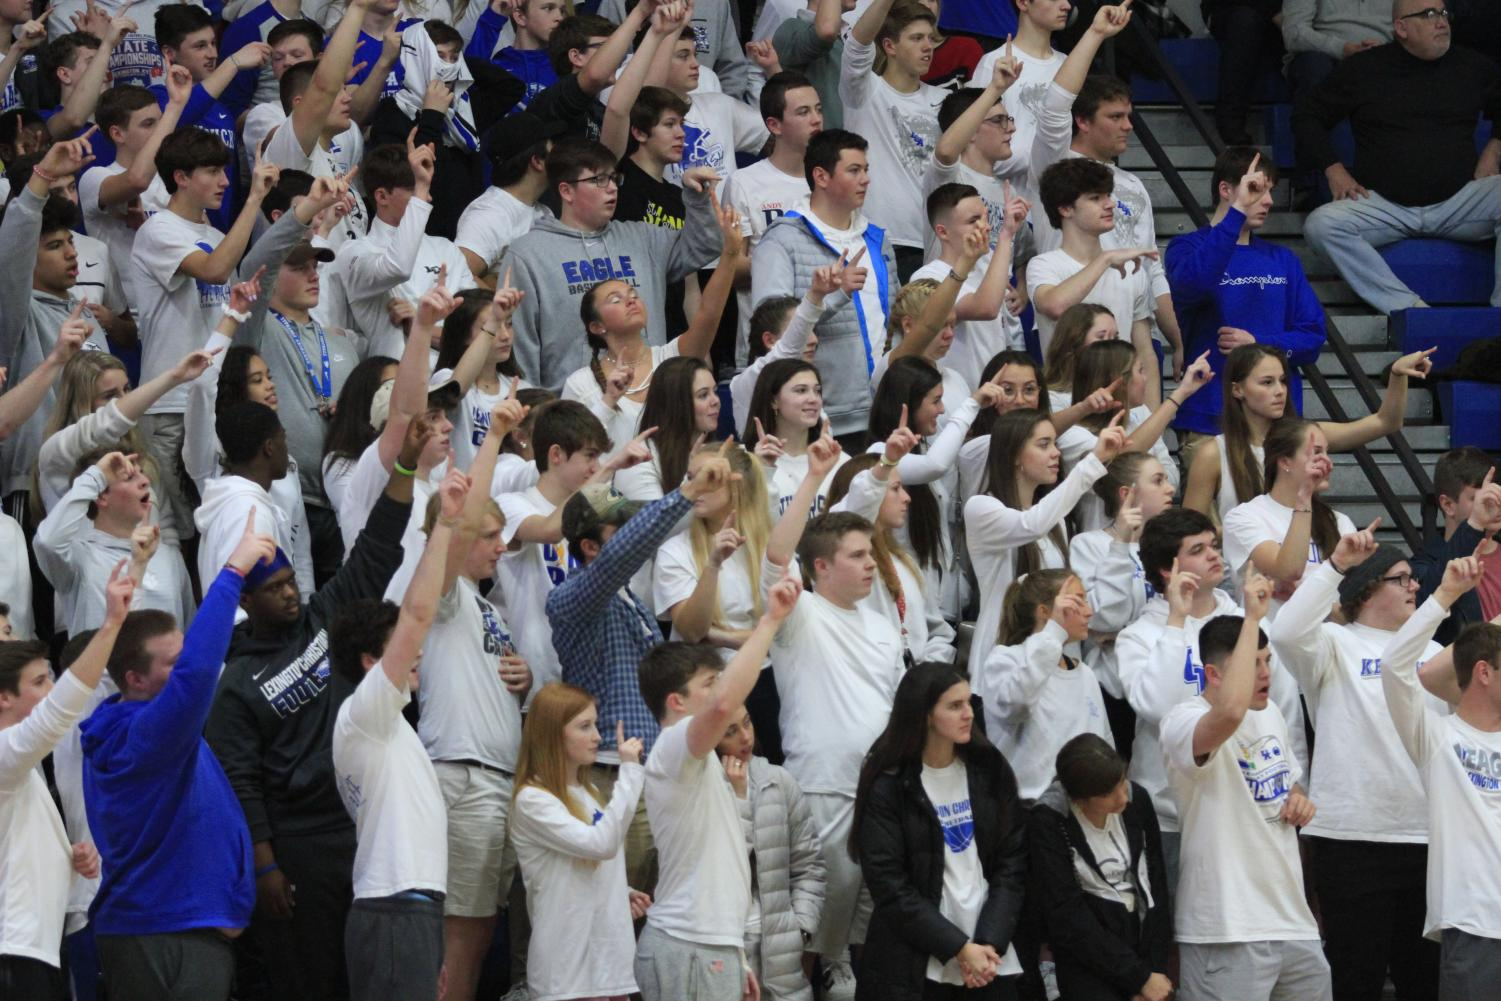 It's a white out as the student section shows out in force for the rivalry game against Catholic.